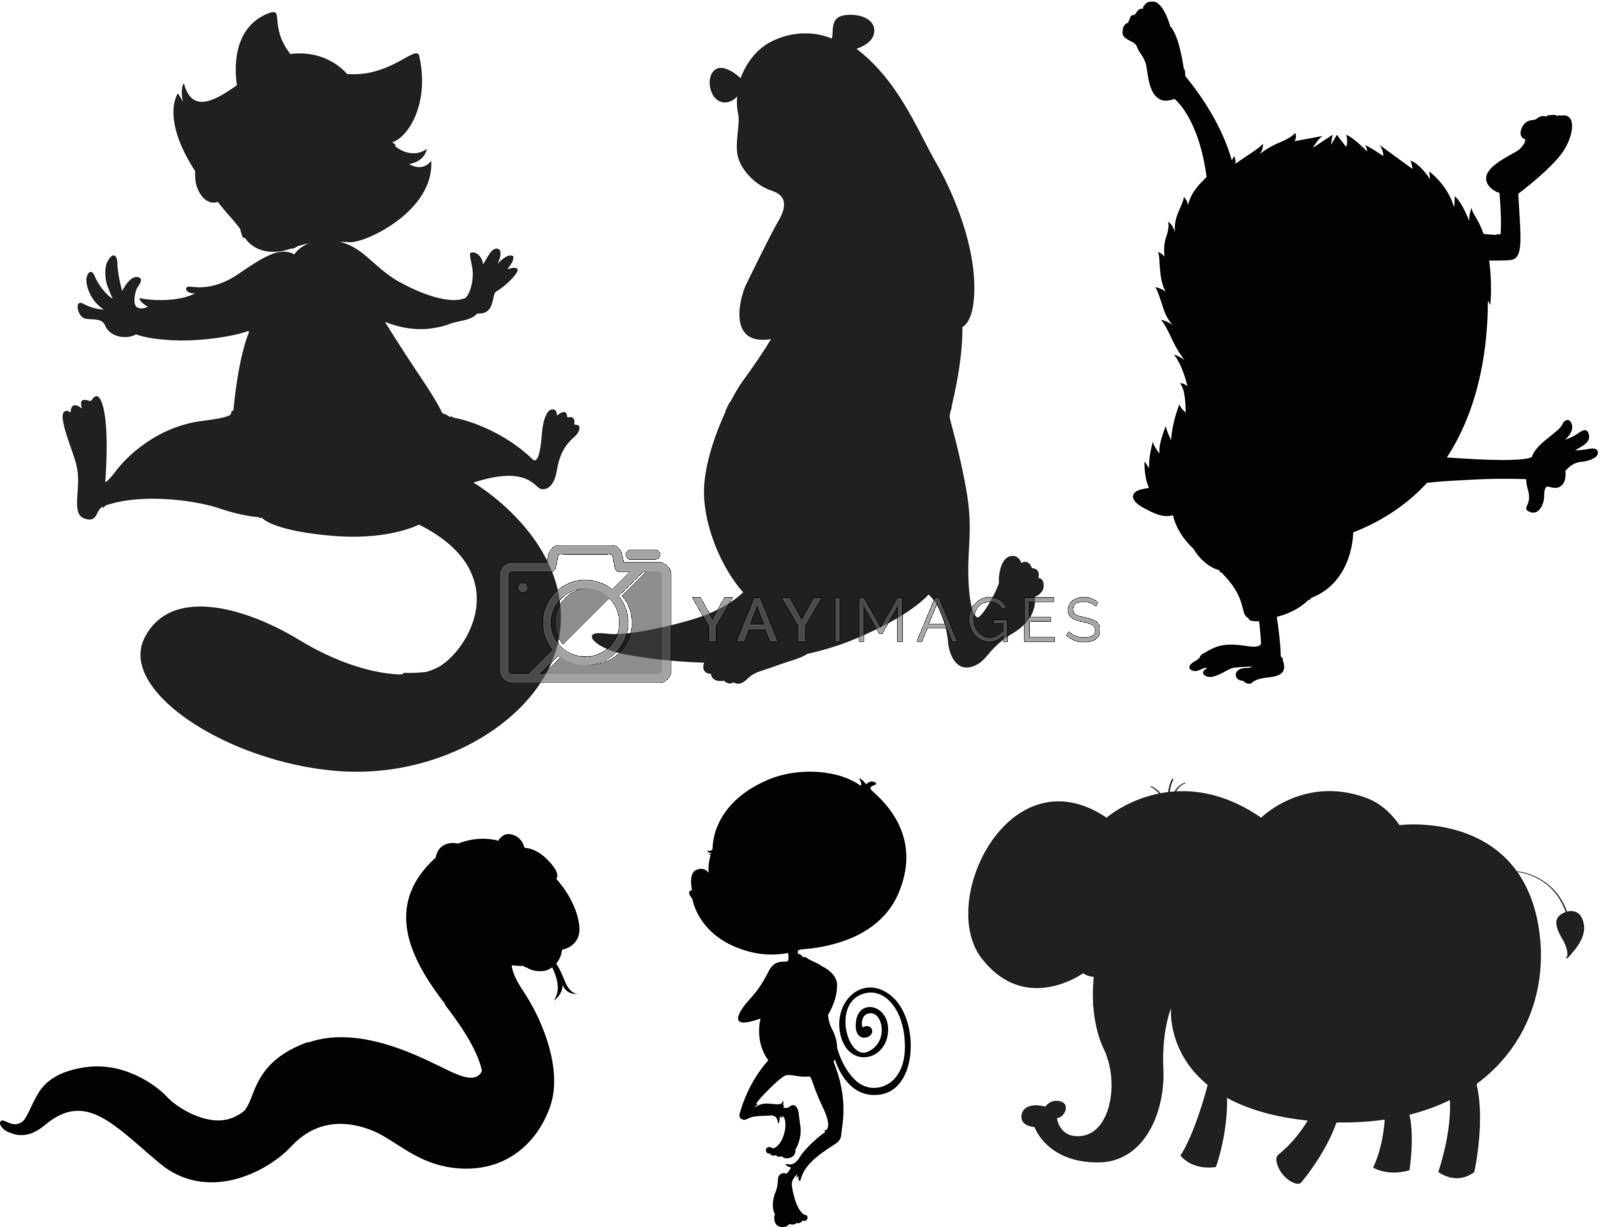 Illustration of the animals in black and gray colors on a white background